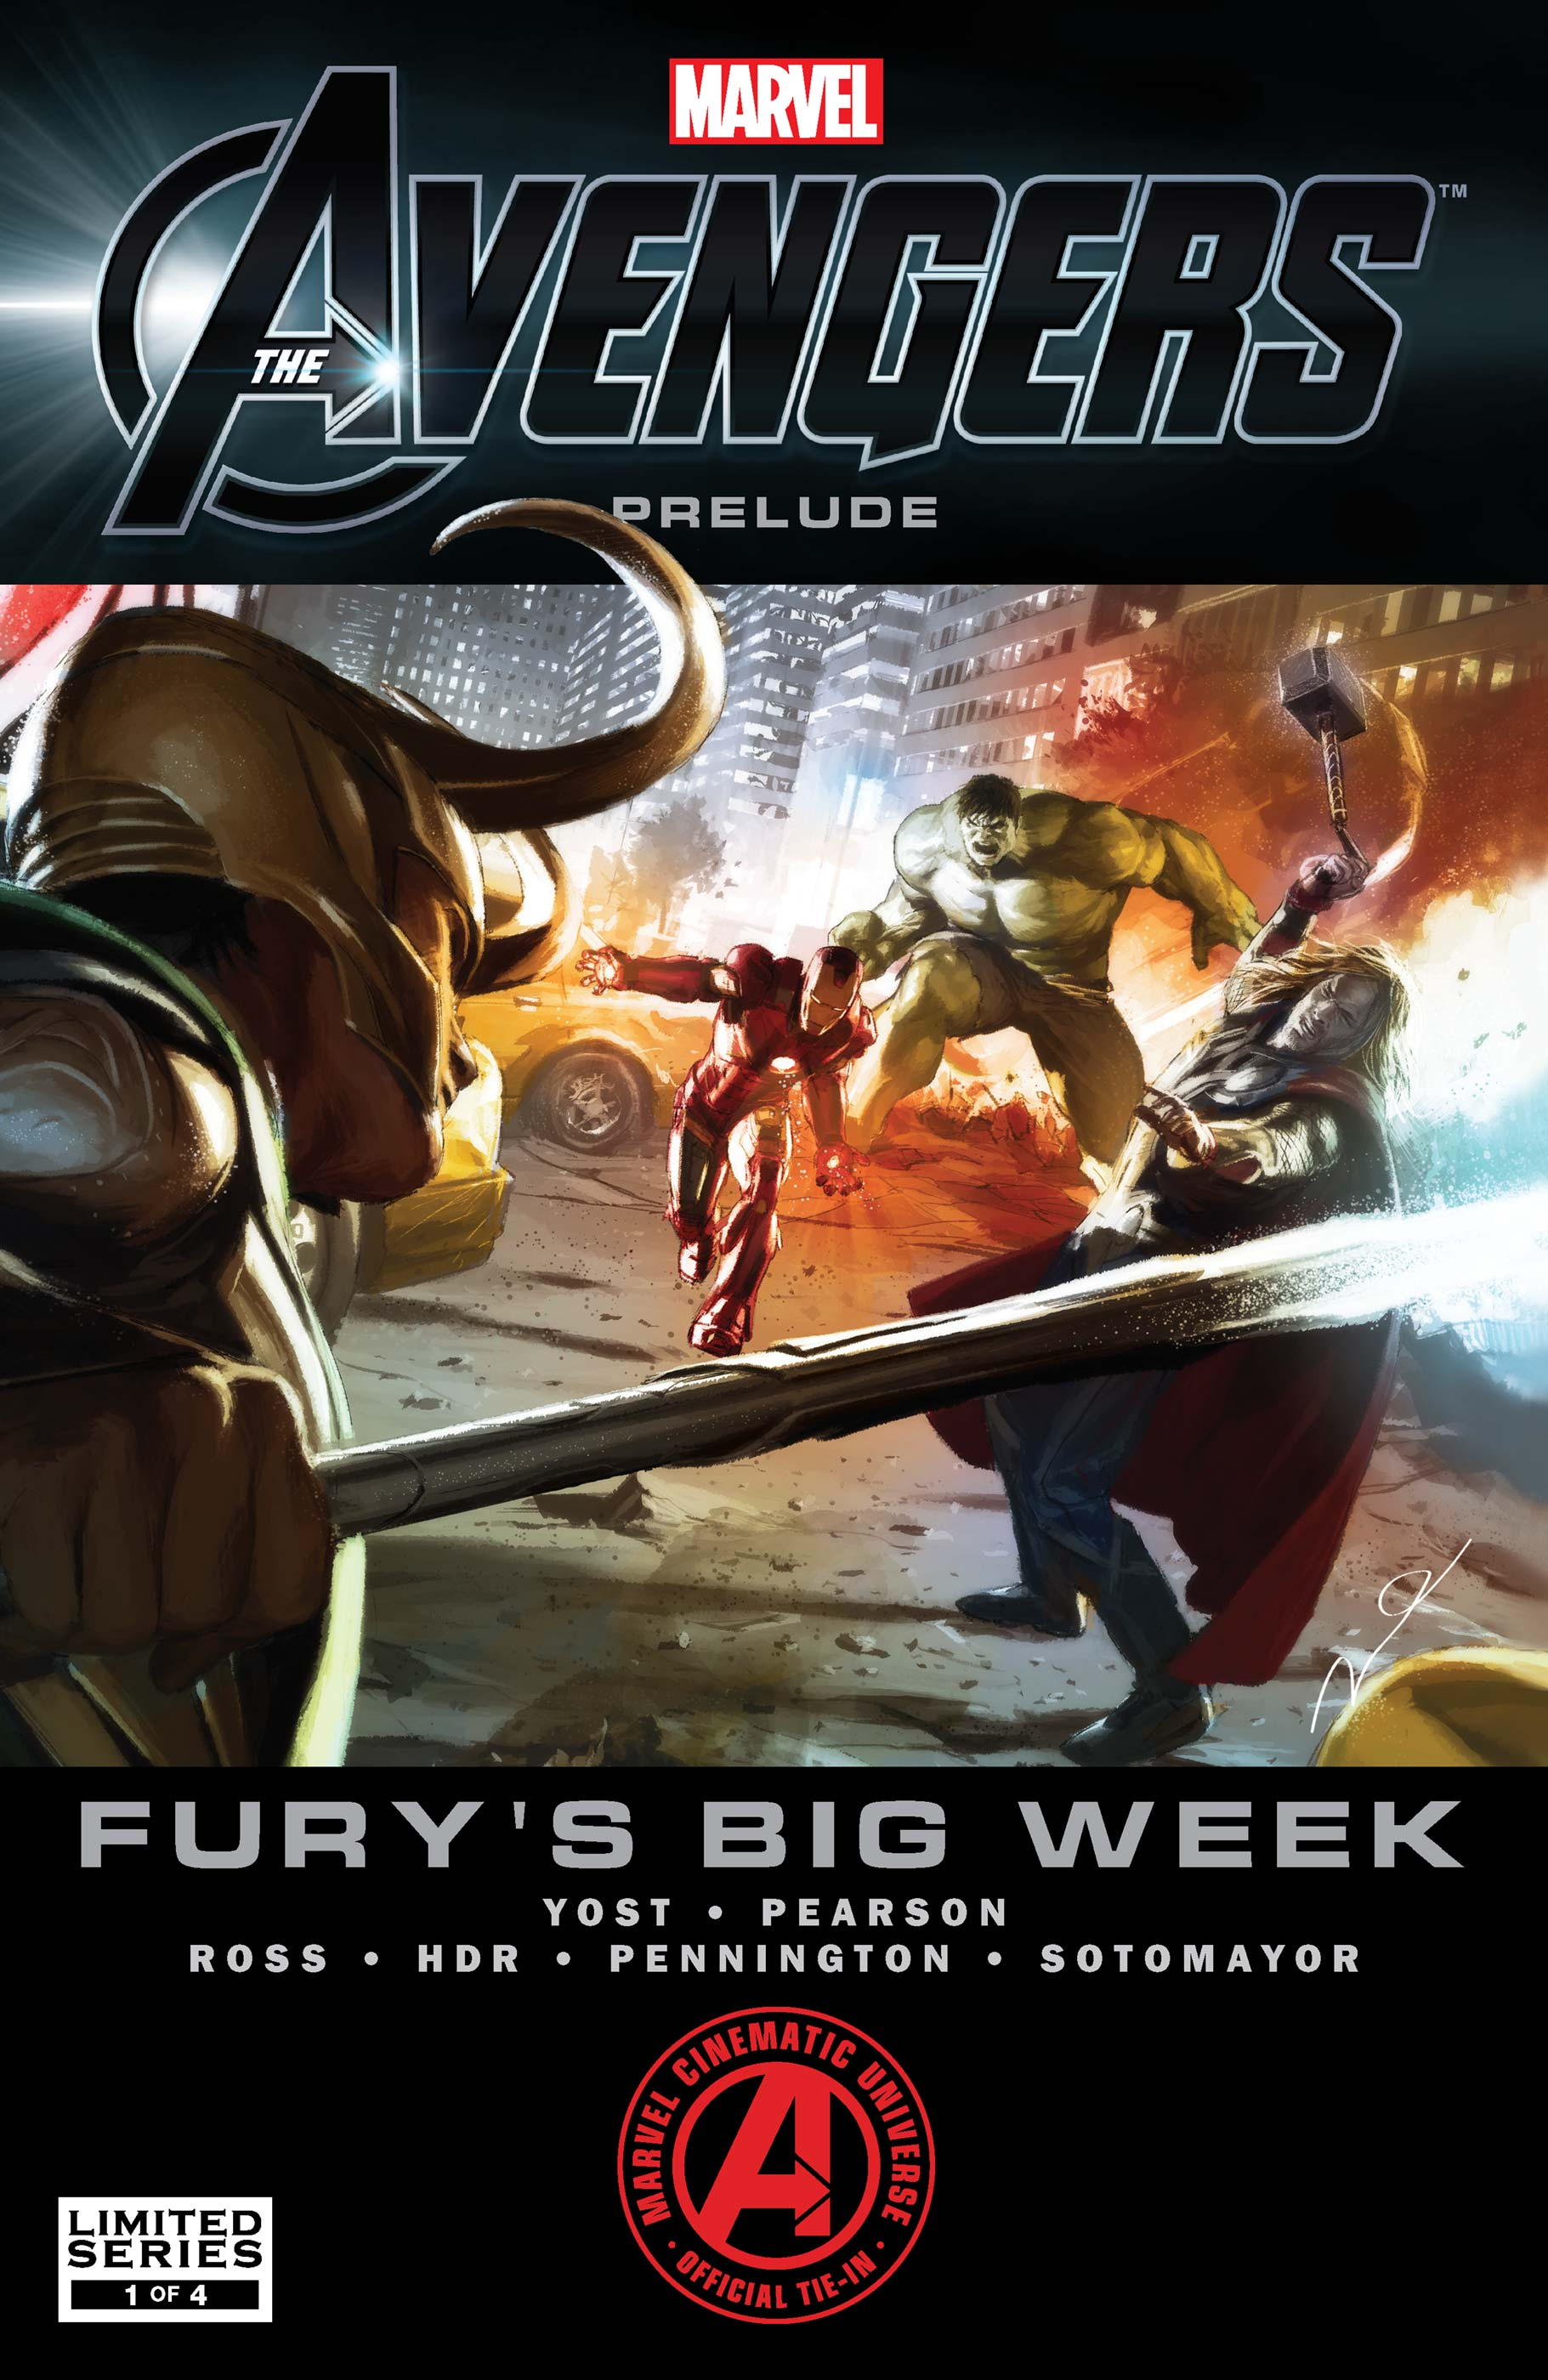 Marvel's The Avengers Prelude: Fury's Big Week (2011) #1